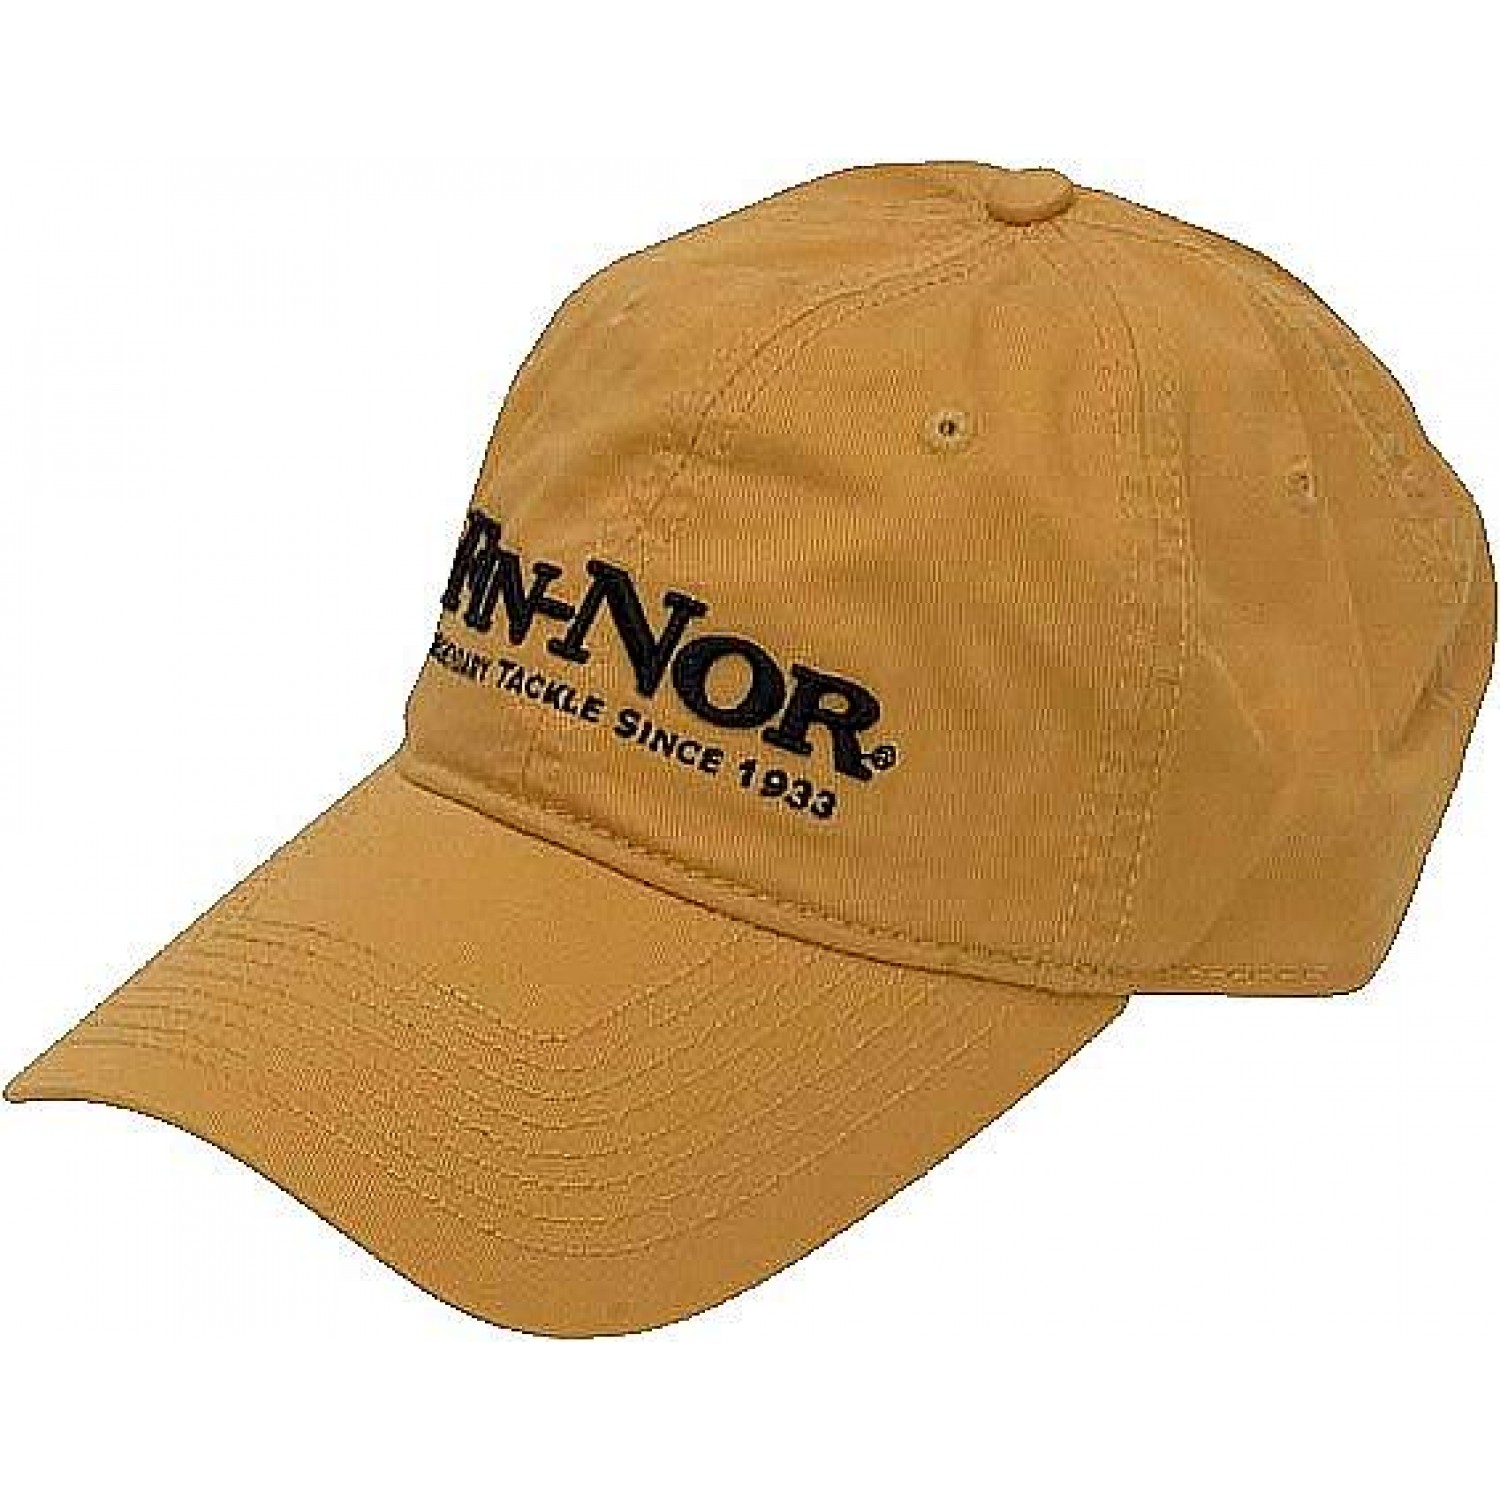 Fin-Nor Fin-Nor Cap gold